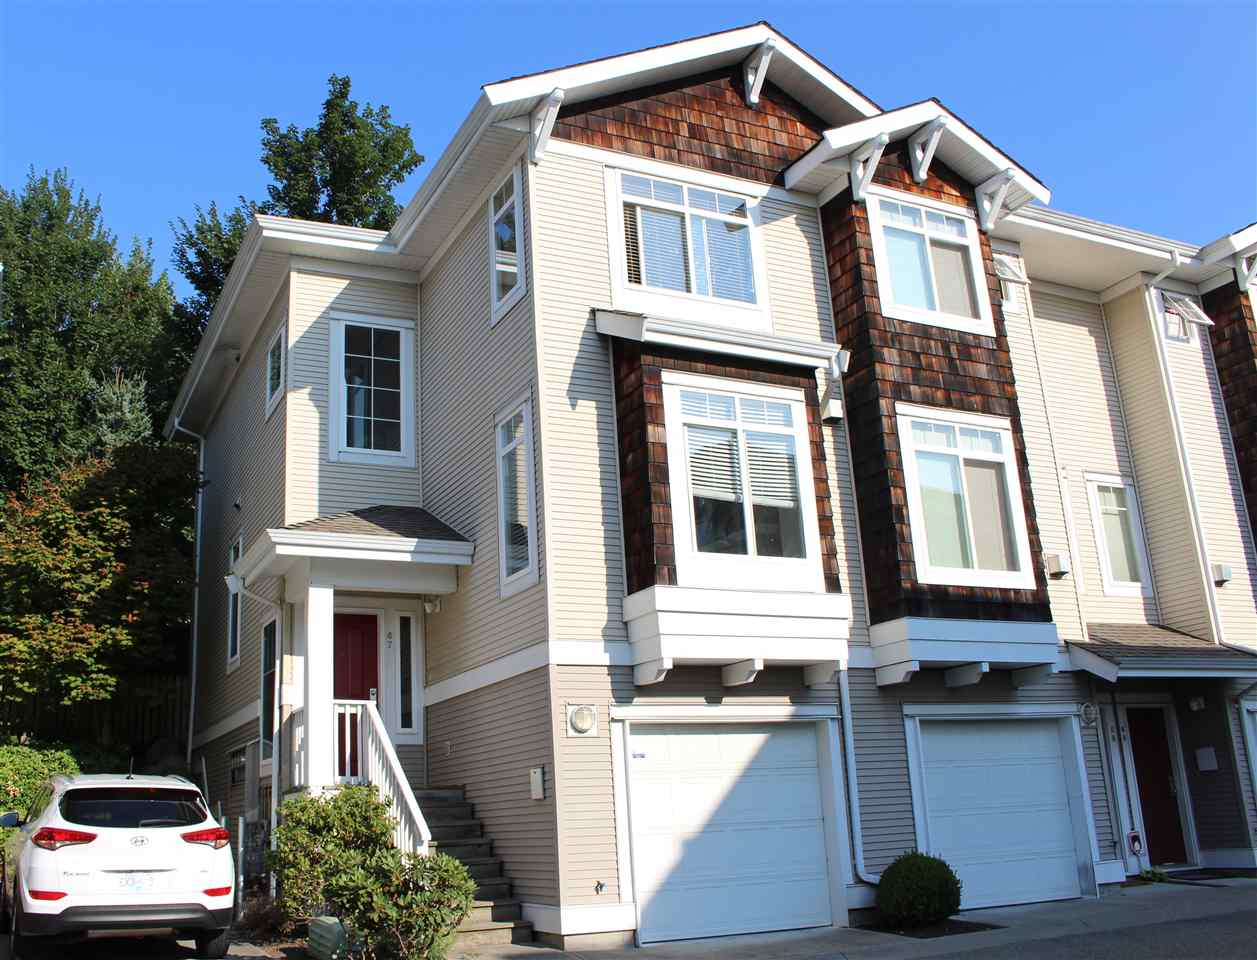 90 surrey bc in vancouver british columbia for sale - Townhouse For Sale At 15030 58 Ave Unit 67 Surrey British Columbia